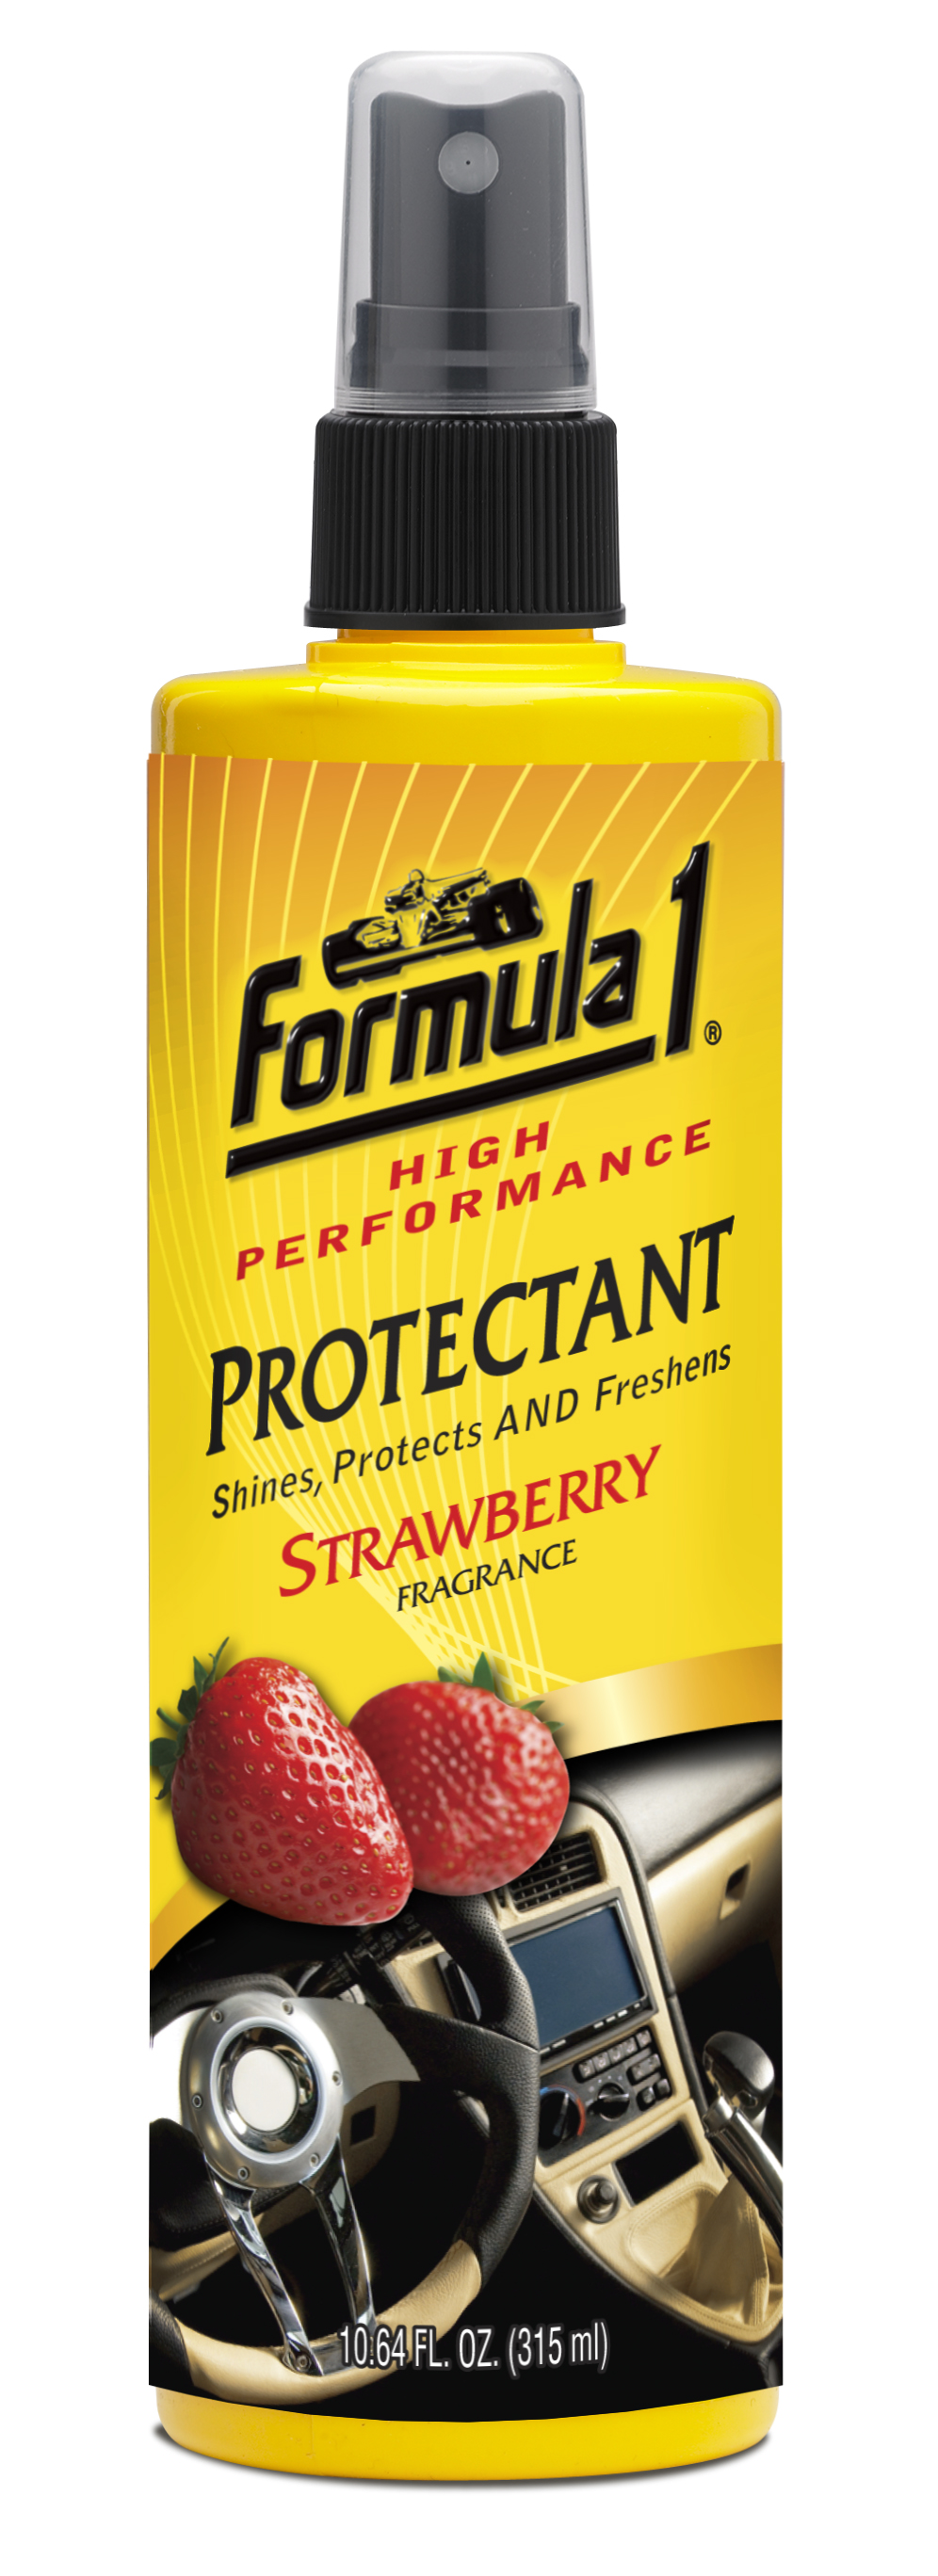 Protectant Strawberry Image